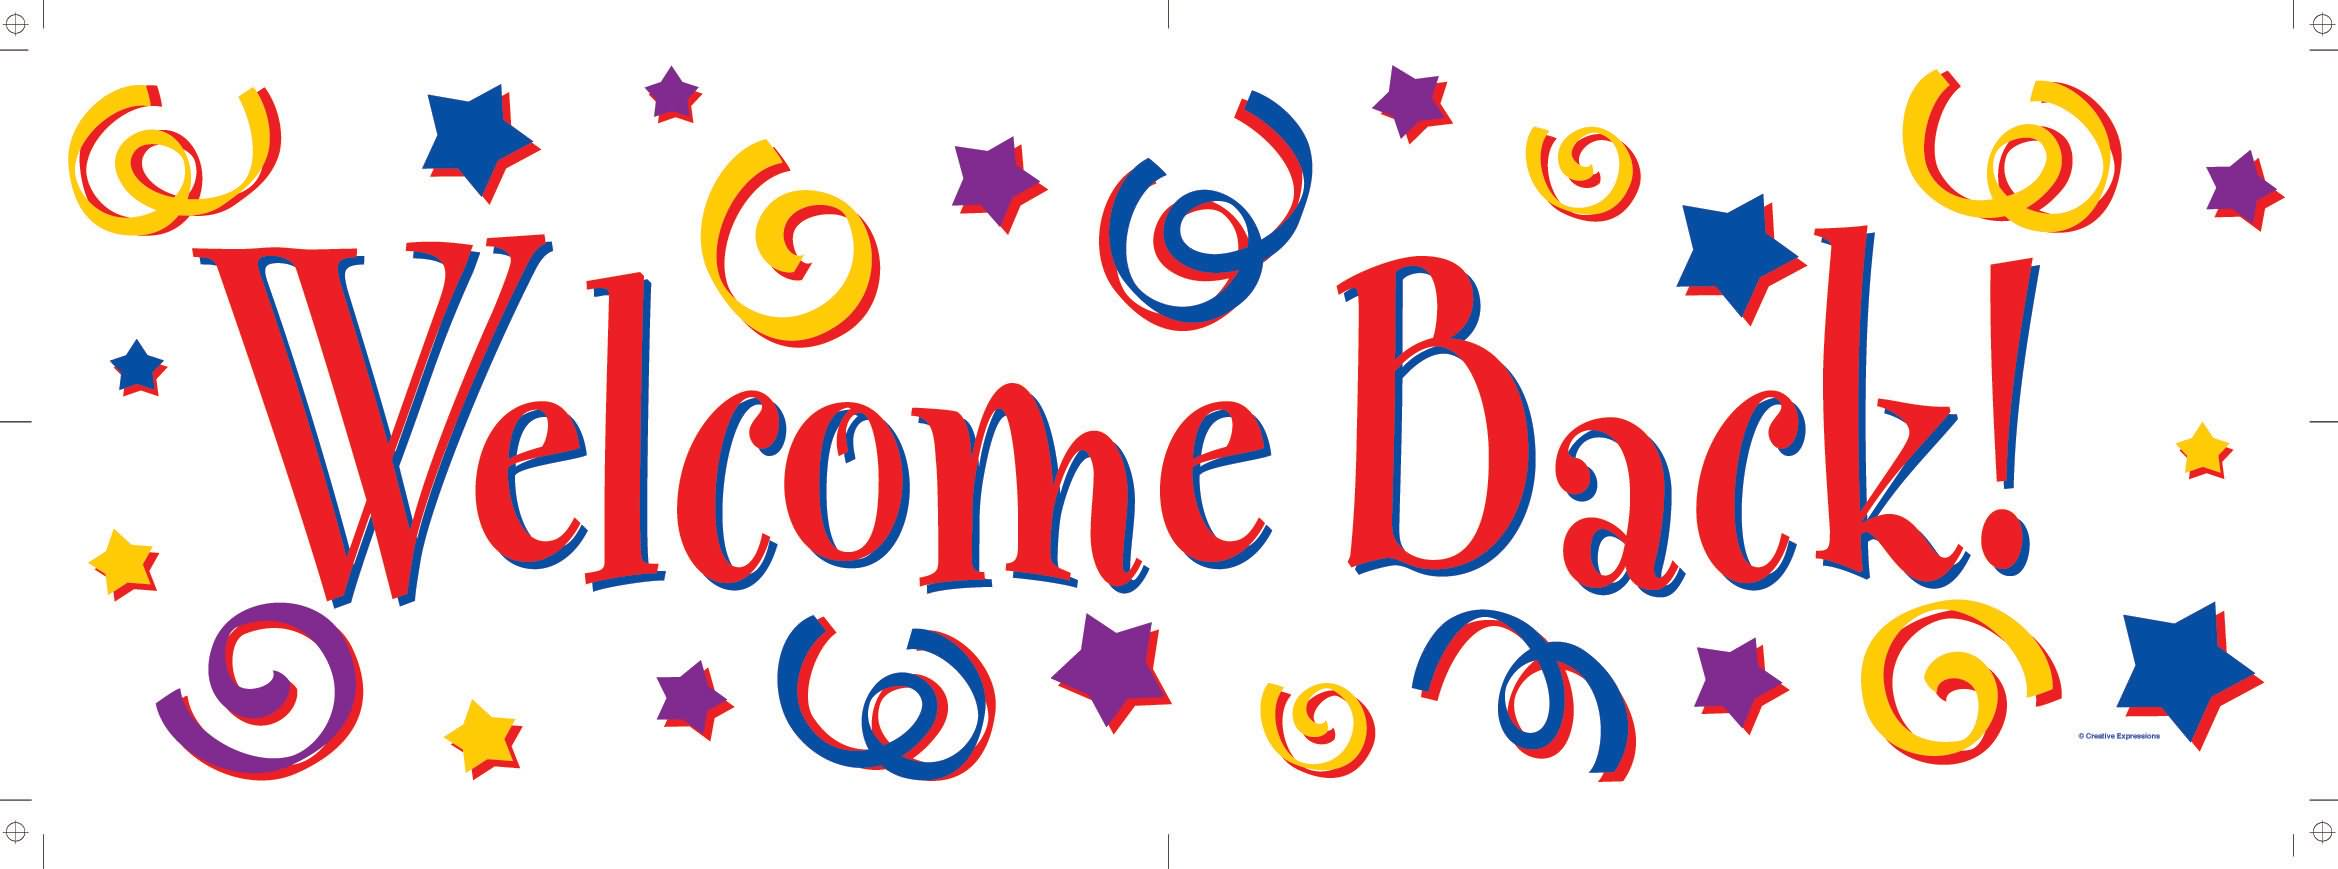 Welcome Back To School Clipart ... Welco-welcome back to school clipart ... Welcome Back Animations .-12